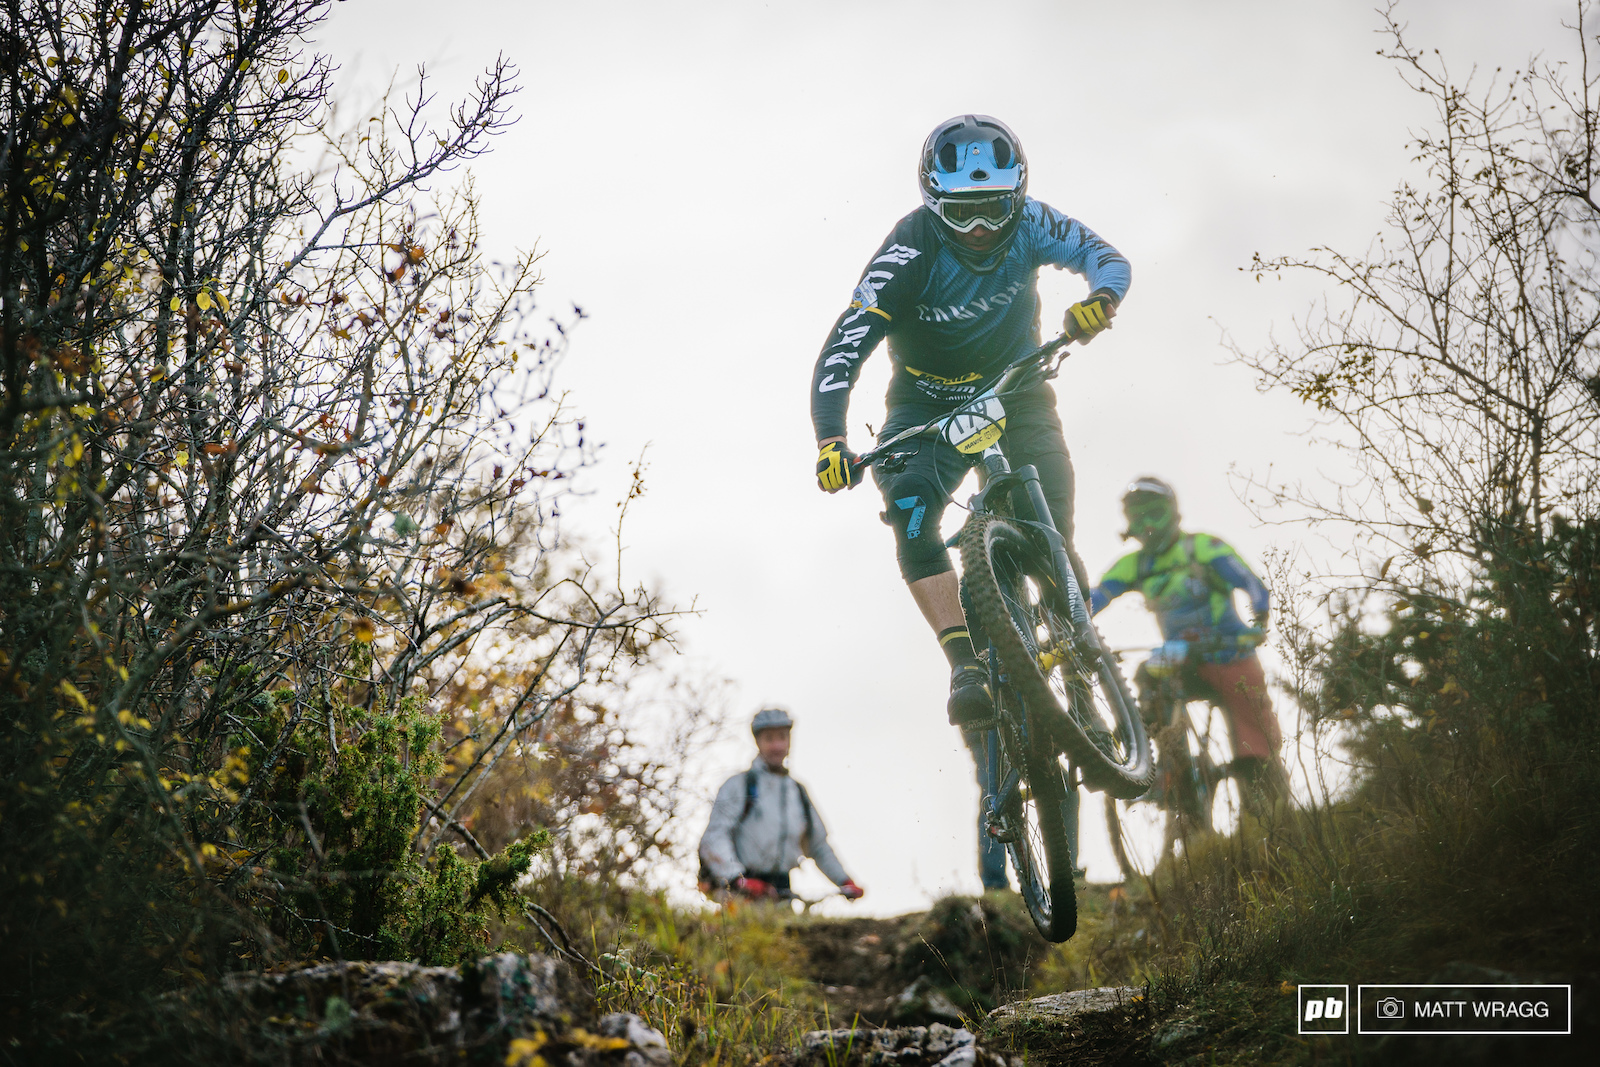 Fabien Barel had a low-key day starting early to ride round with friends and enjoy the day. That said he still managed third overall his leisurely weekend is not quite the same as most people s.